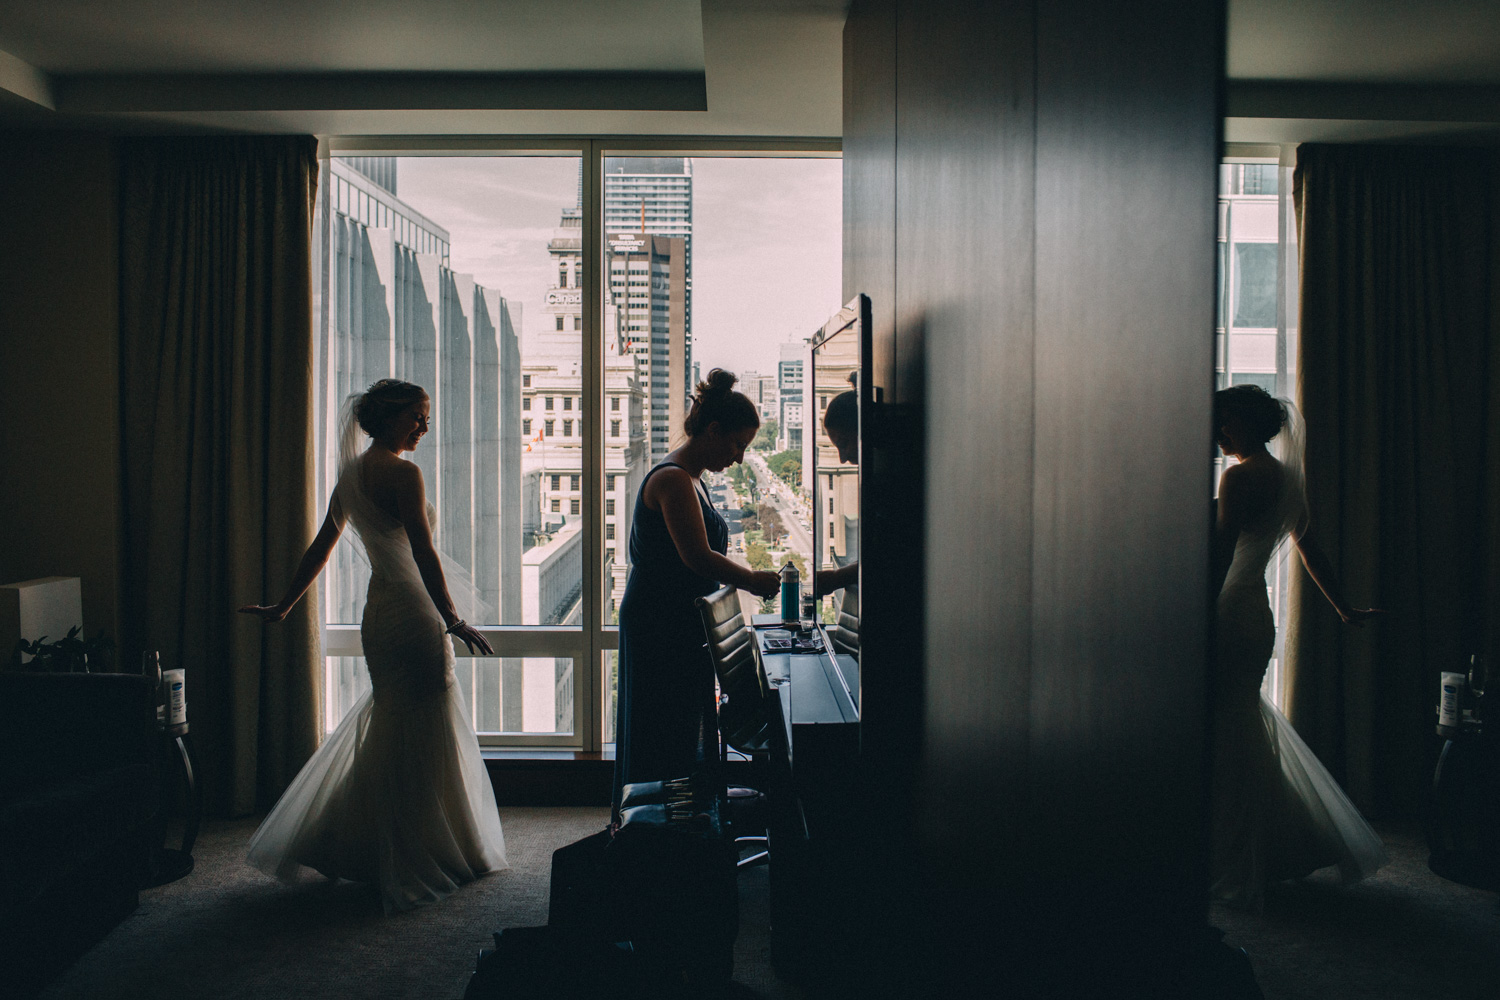 knox-college-toronto-wedding-photos-by-sam-wong-of-artanis-collective_15